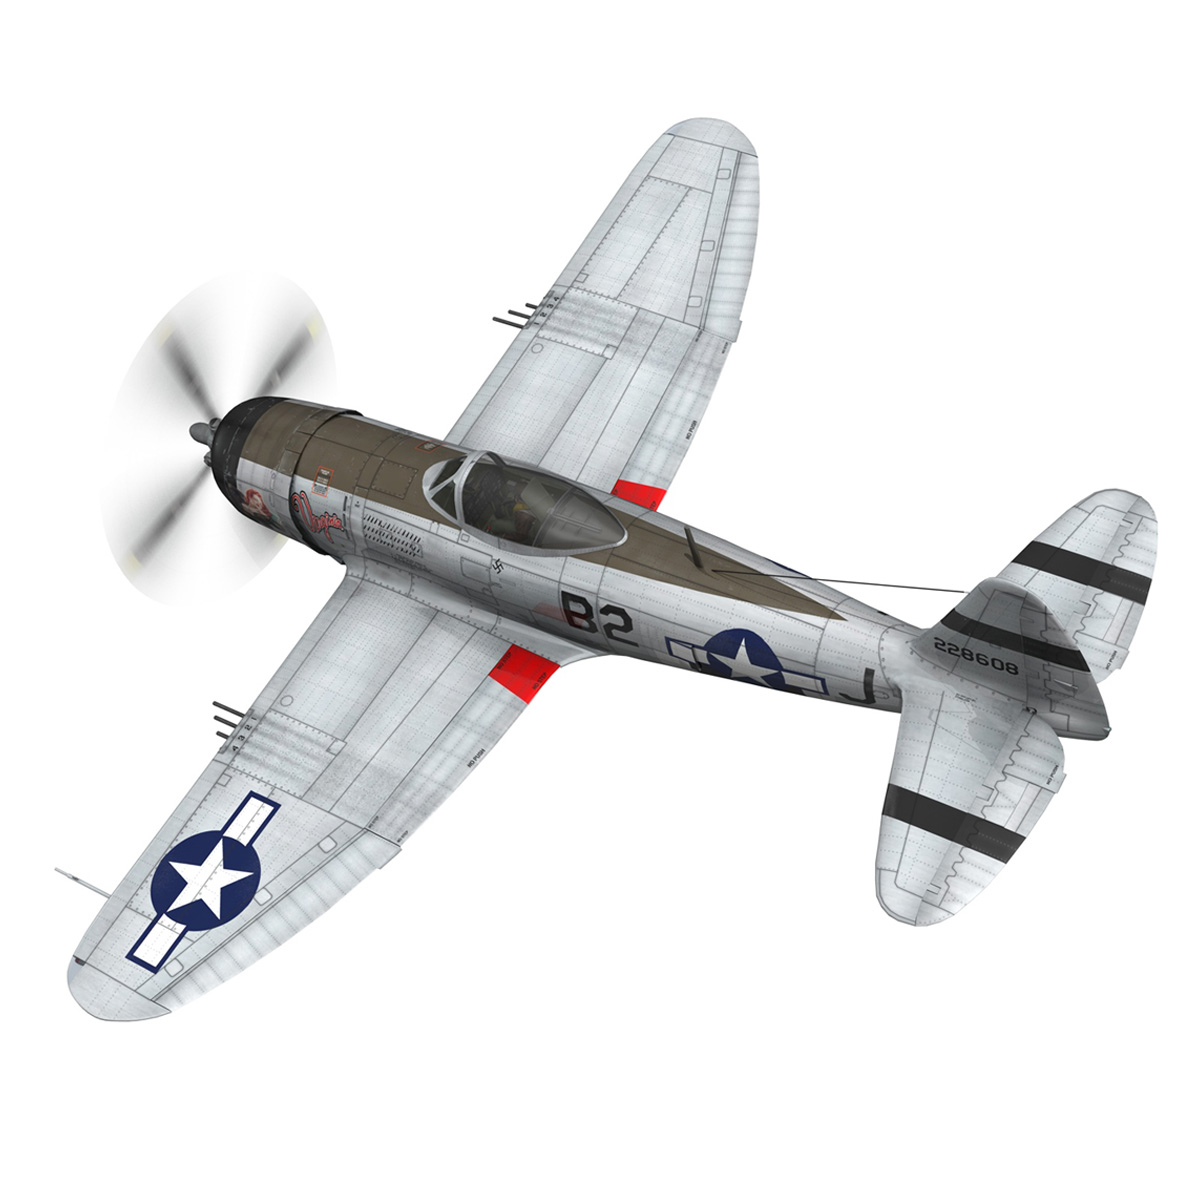 Republic P-47D Thunderbolt - Virginia 3d model  266772